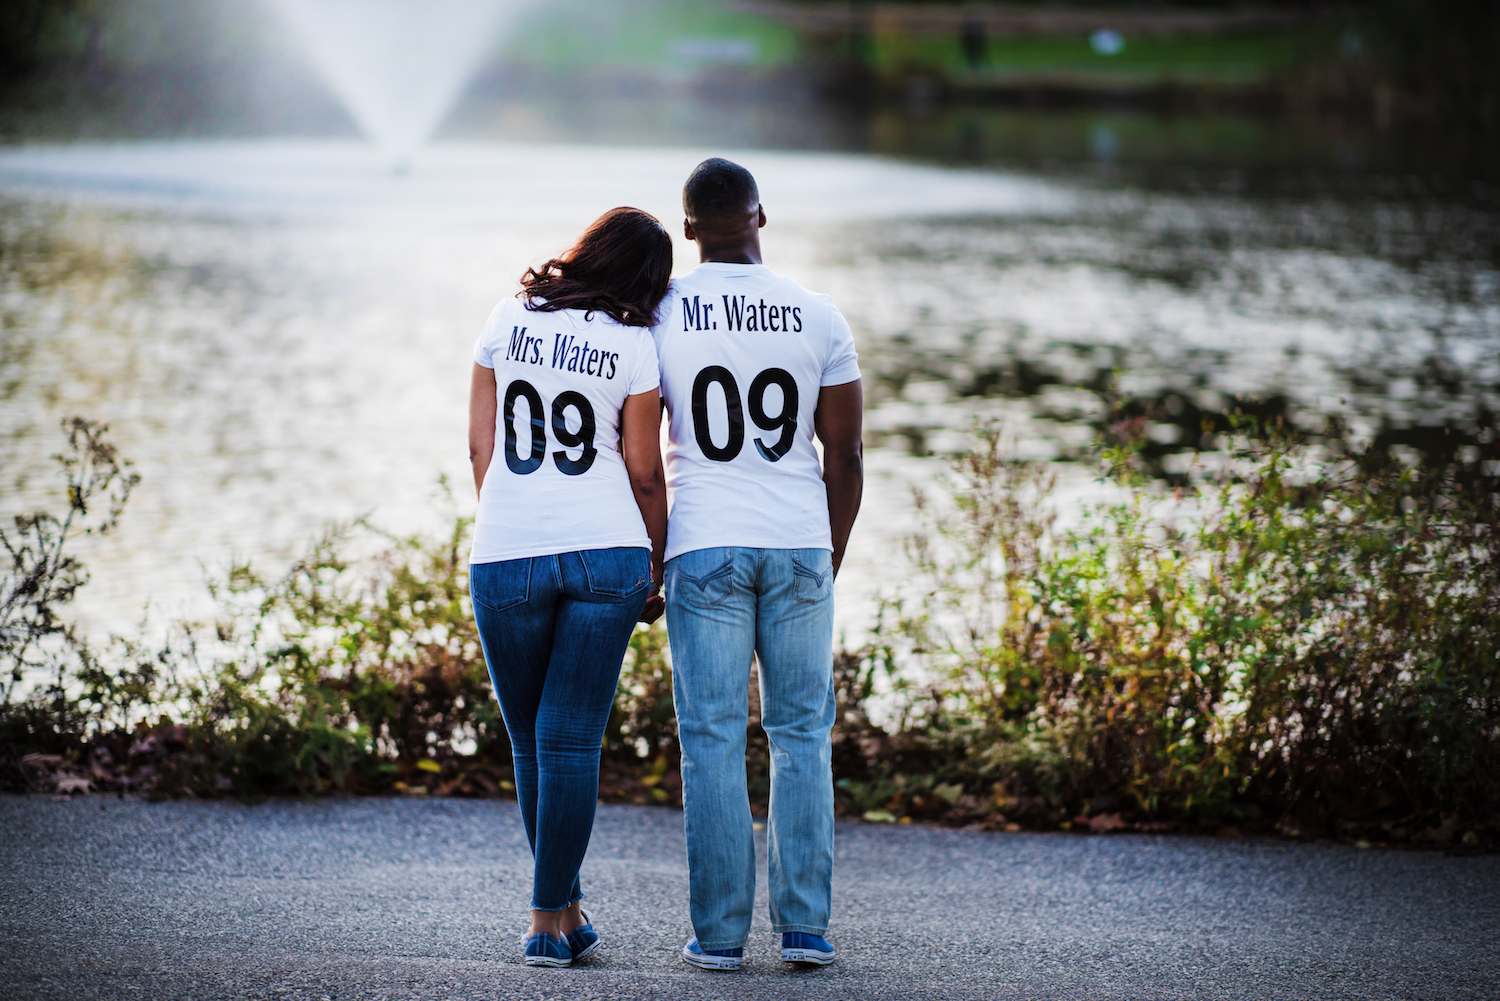 heidi&rob-in-personalized-shirts-by-water-park-photography-engagement-nj